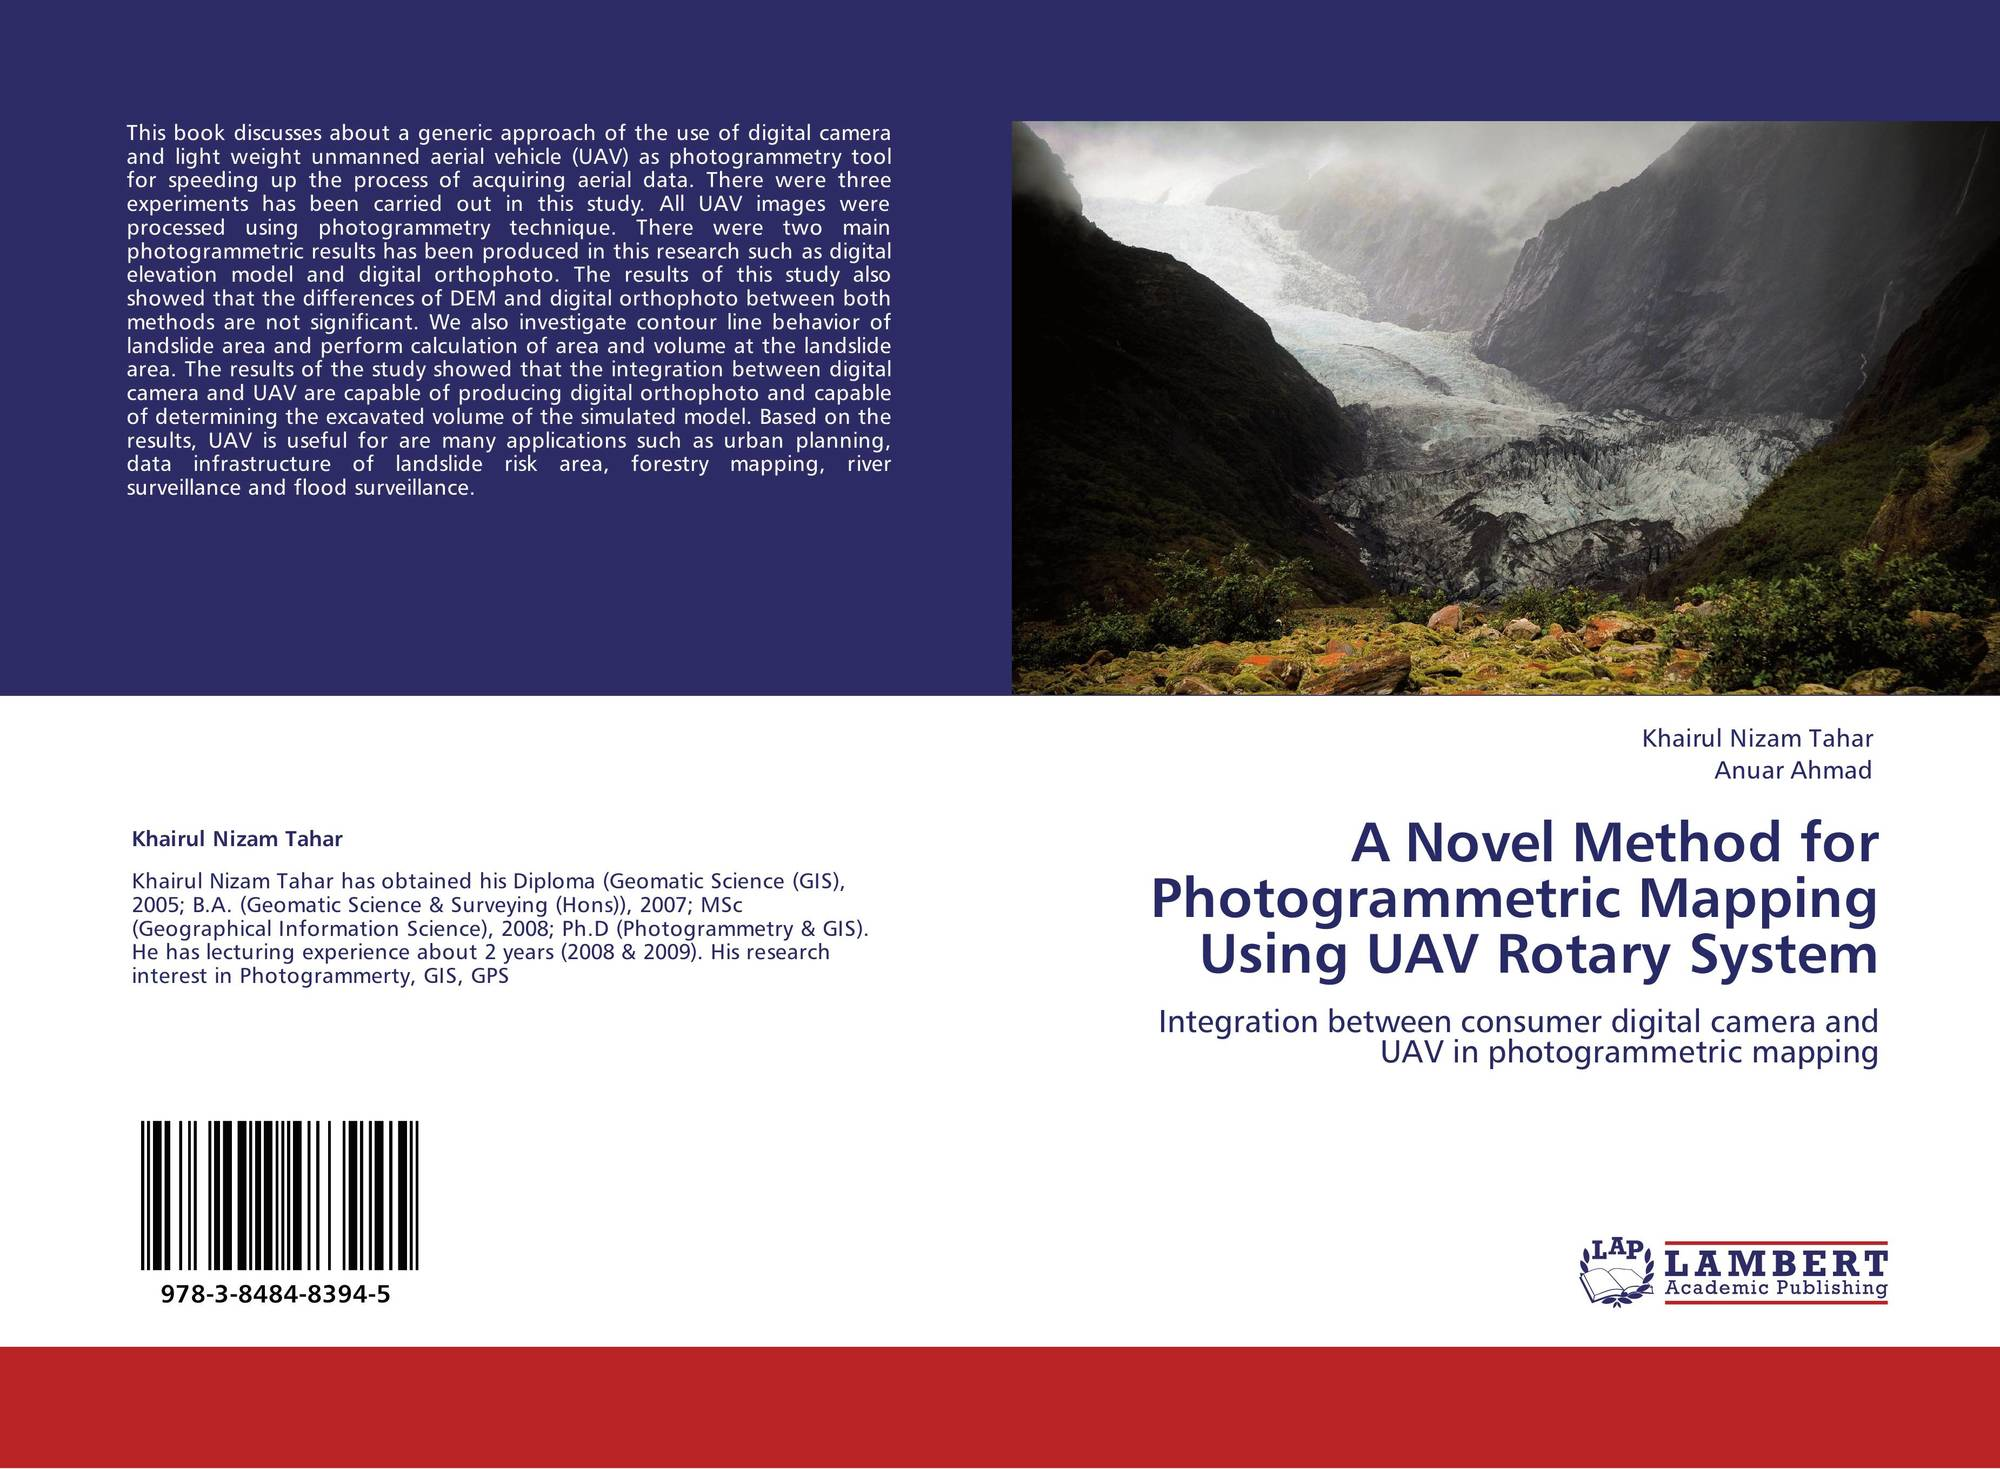 Bookcover Of A Novel Method For Photogrammetric Mapping Using UAV Rotary System